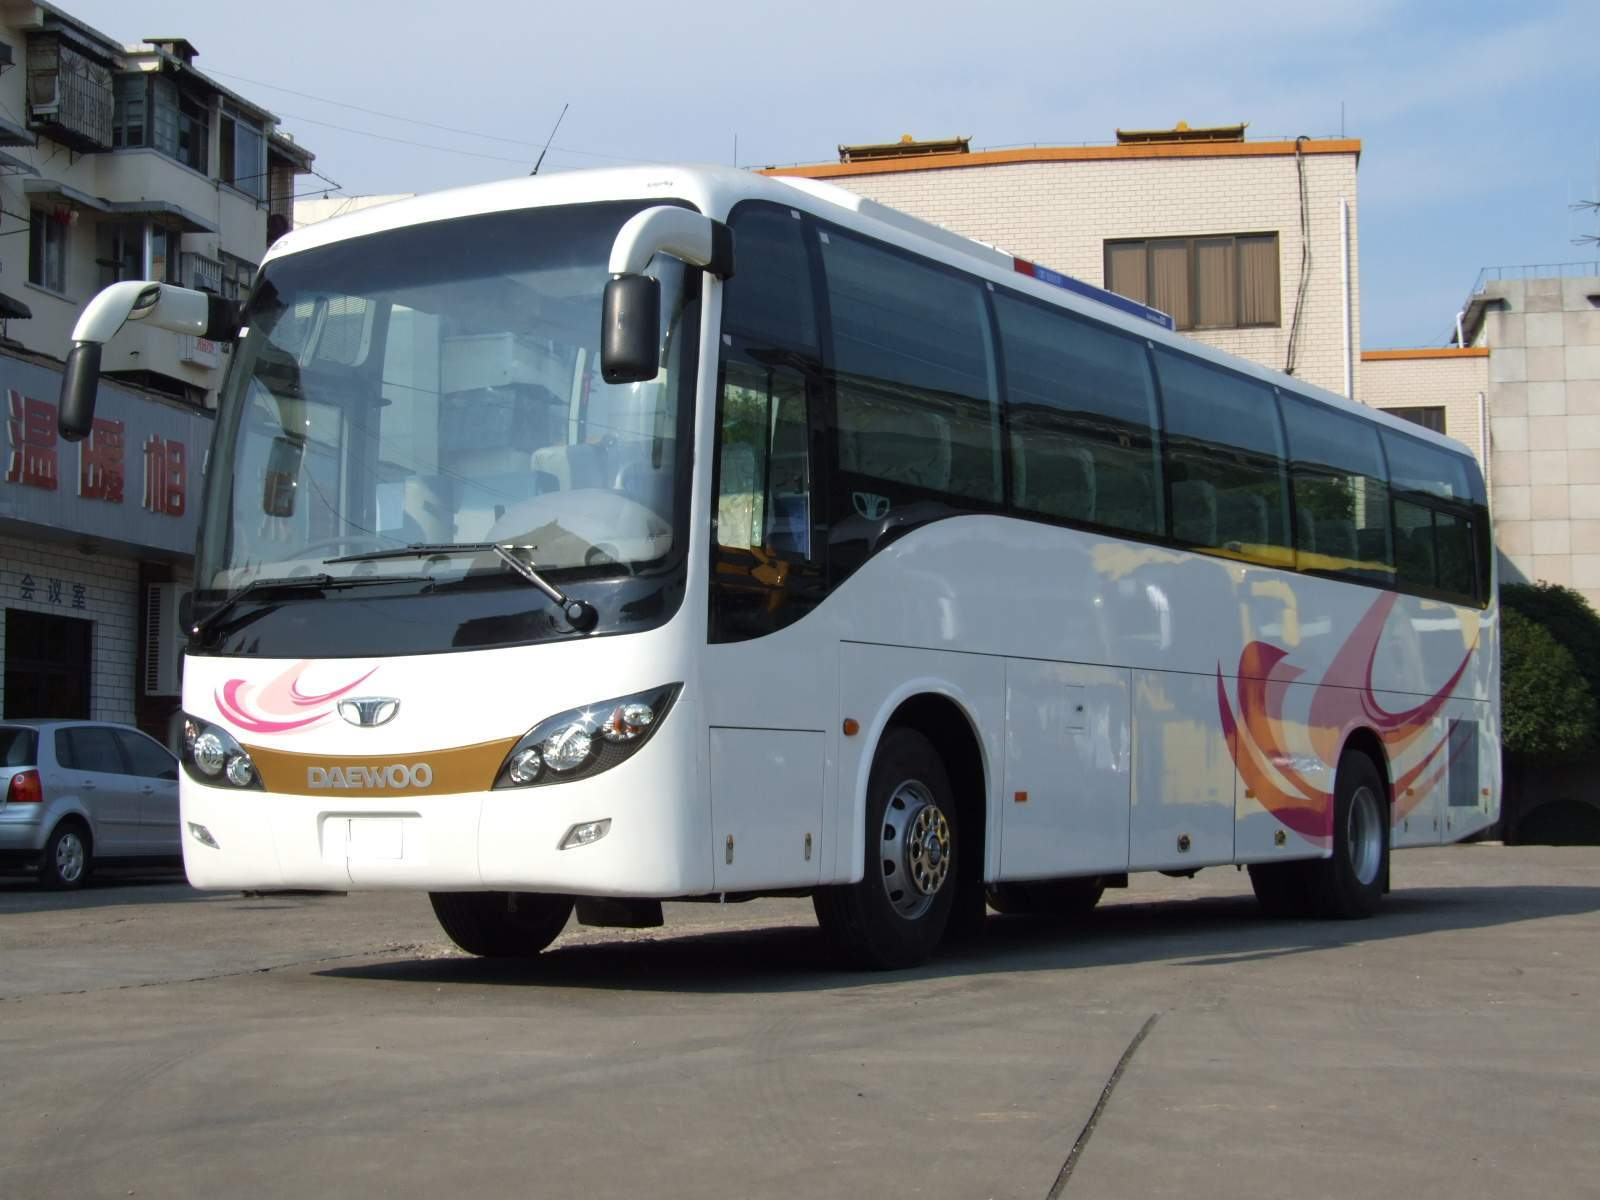 Guilin Daewoo Bus Co.,Ltd. - bus, daewoo bus, coach